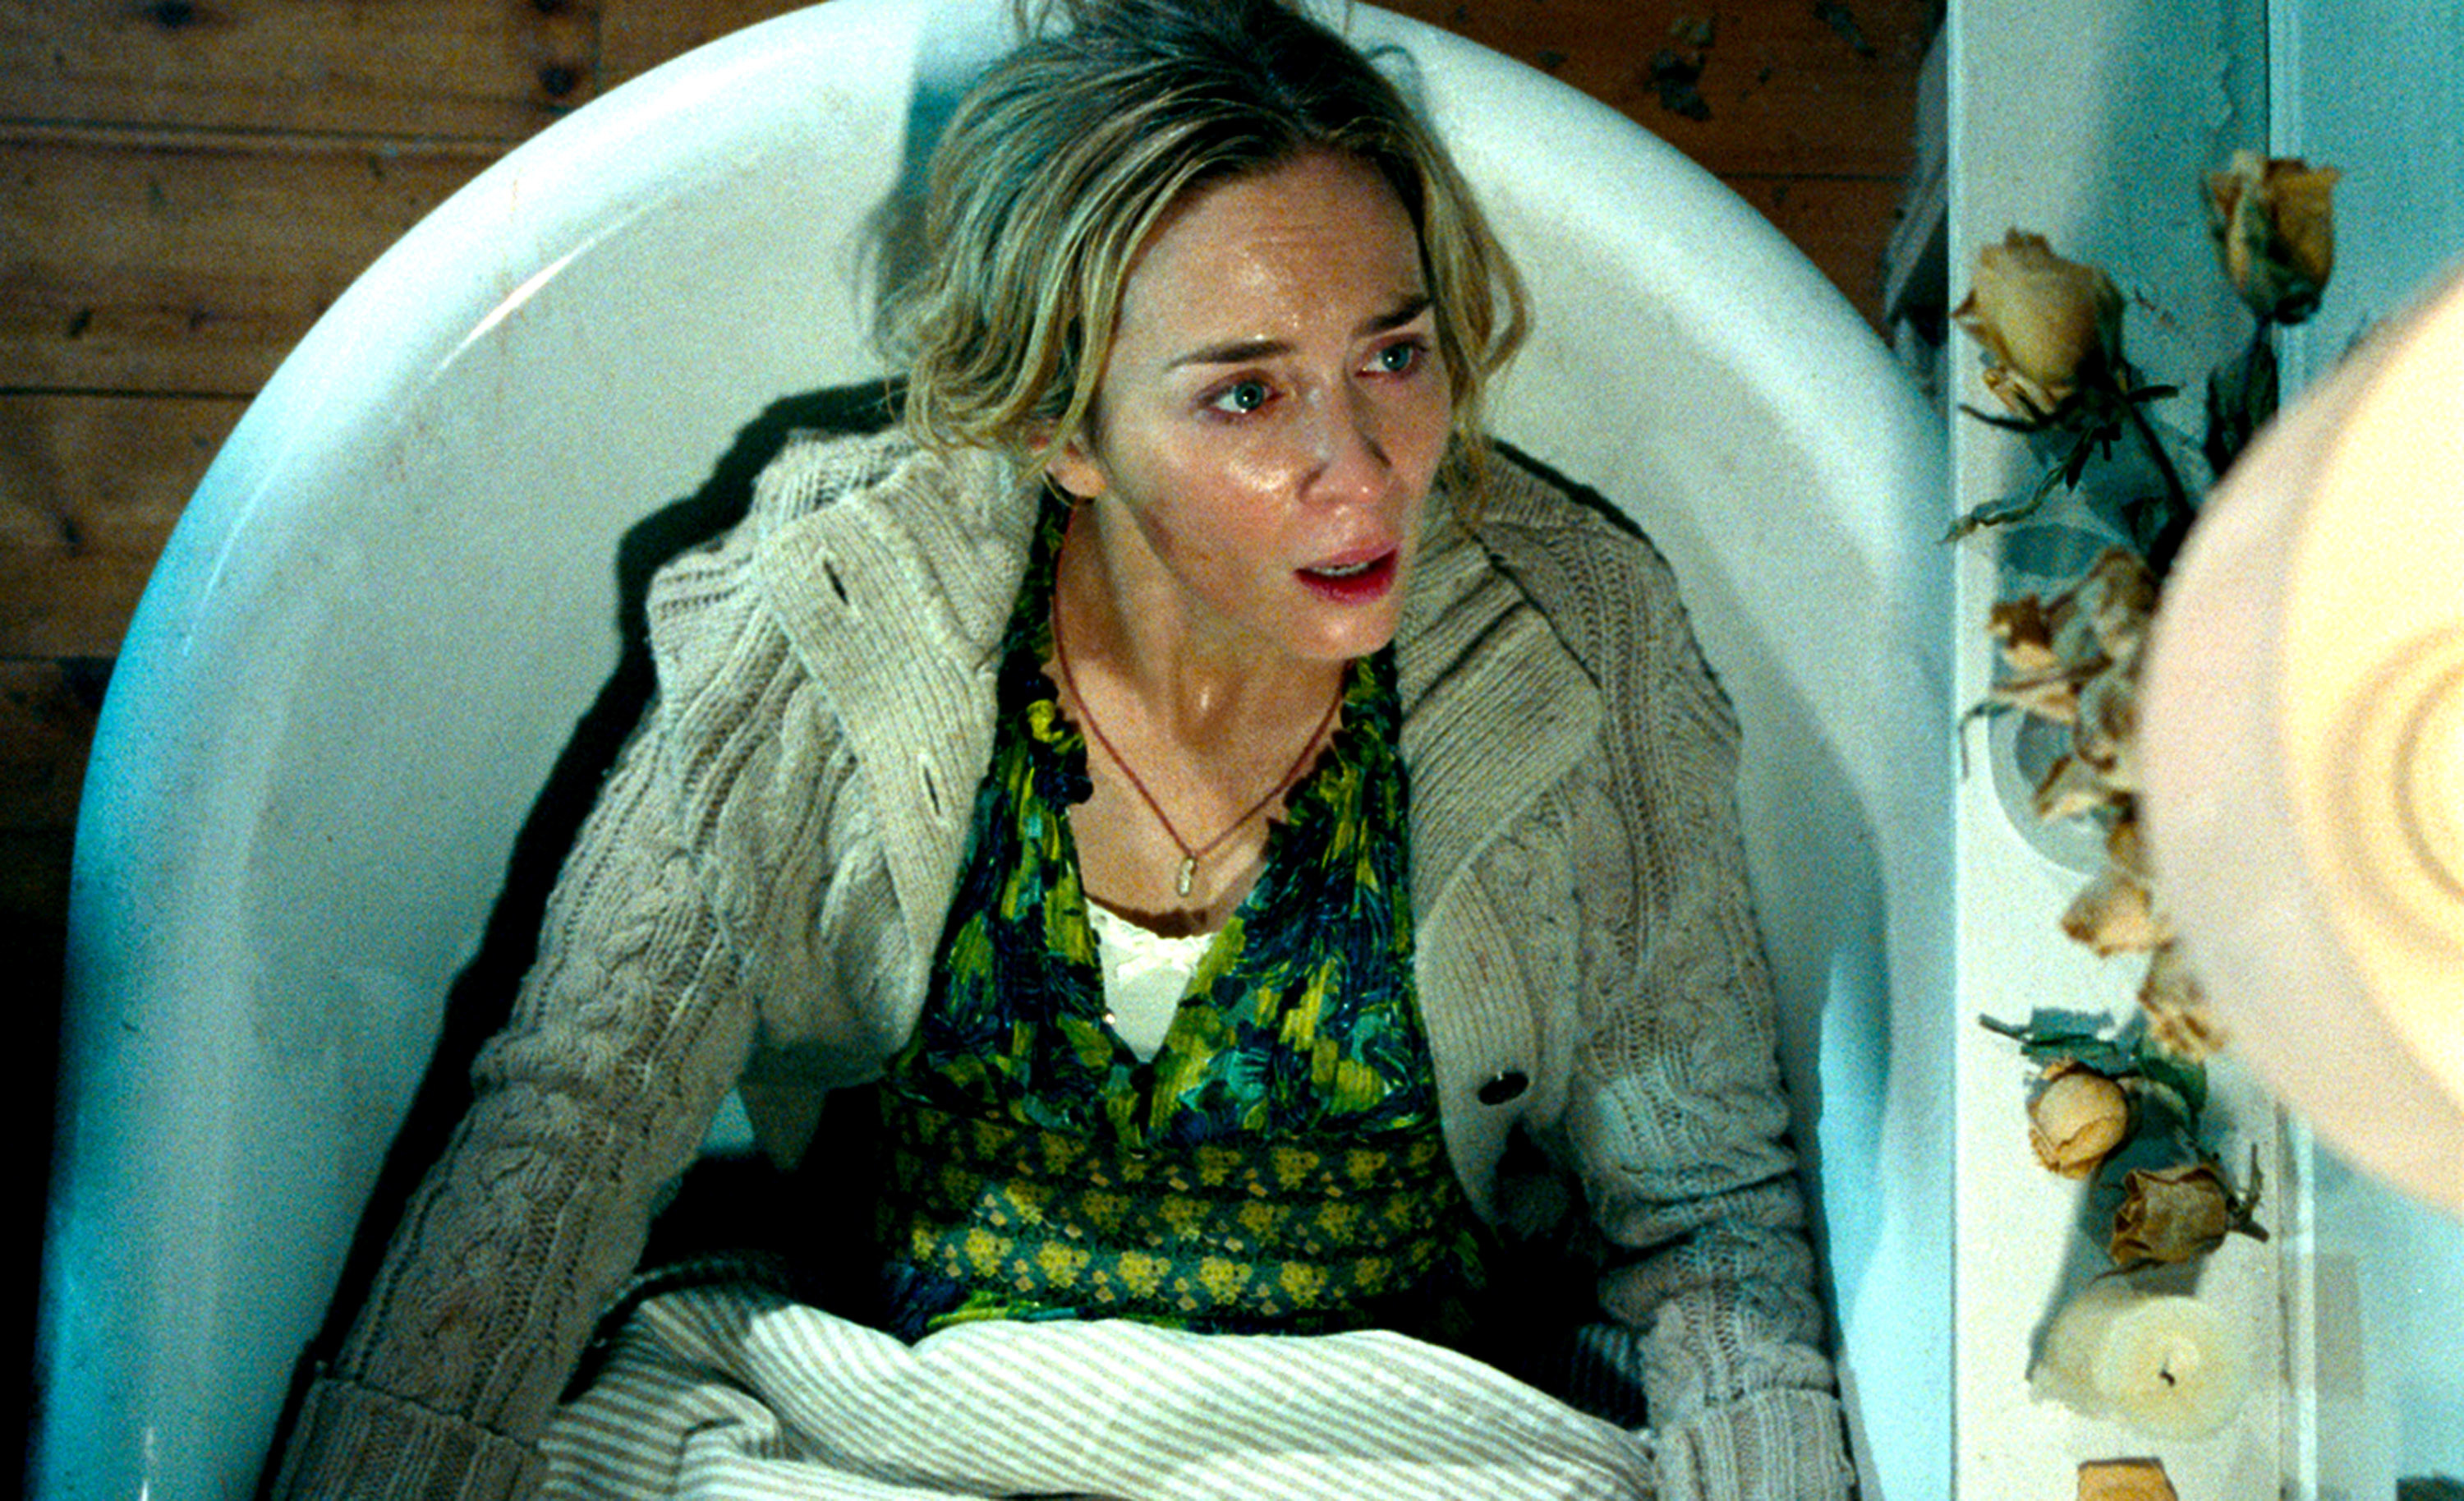 A Quiet Place Trailer: The John Krasinski & Emily Blunt Horror Thriller